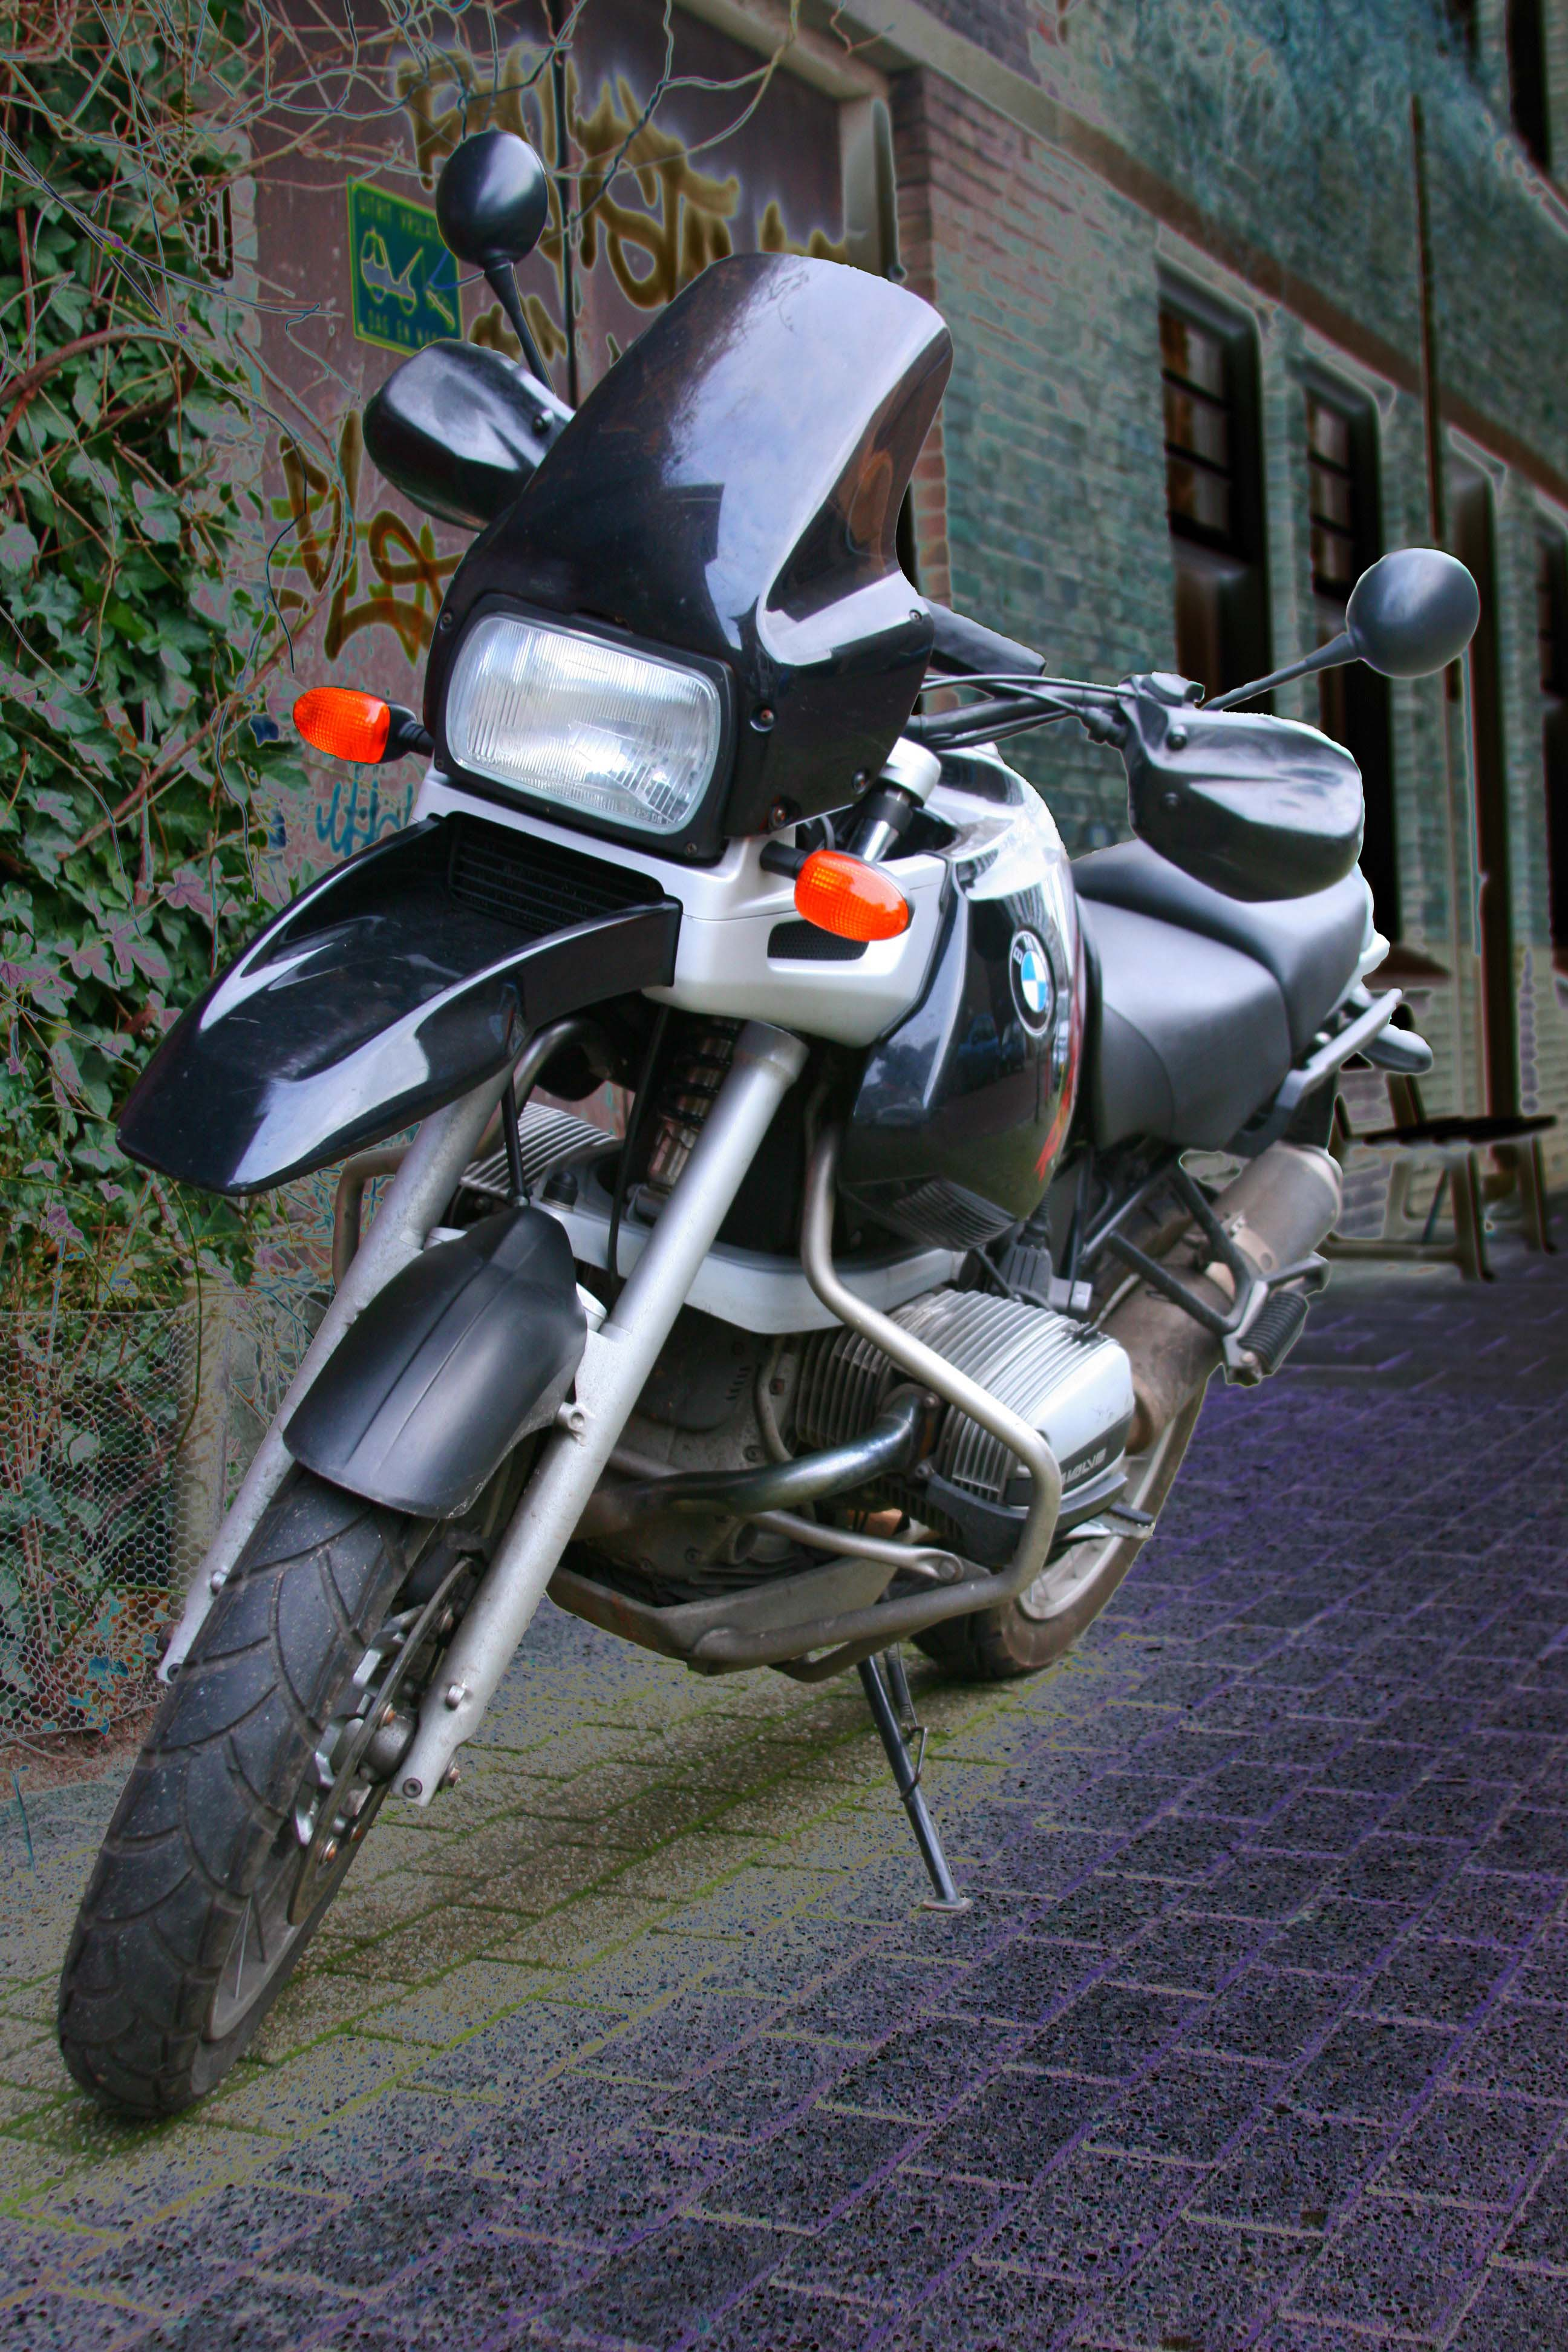 Bmw R1150r Wiring Diagrams 2006 Diagram For Free Freelander Together With 2002 Land Rover Fuse Box Diagram1 Moreover R1100gs Front In Addition As